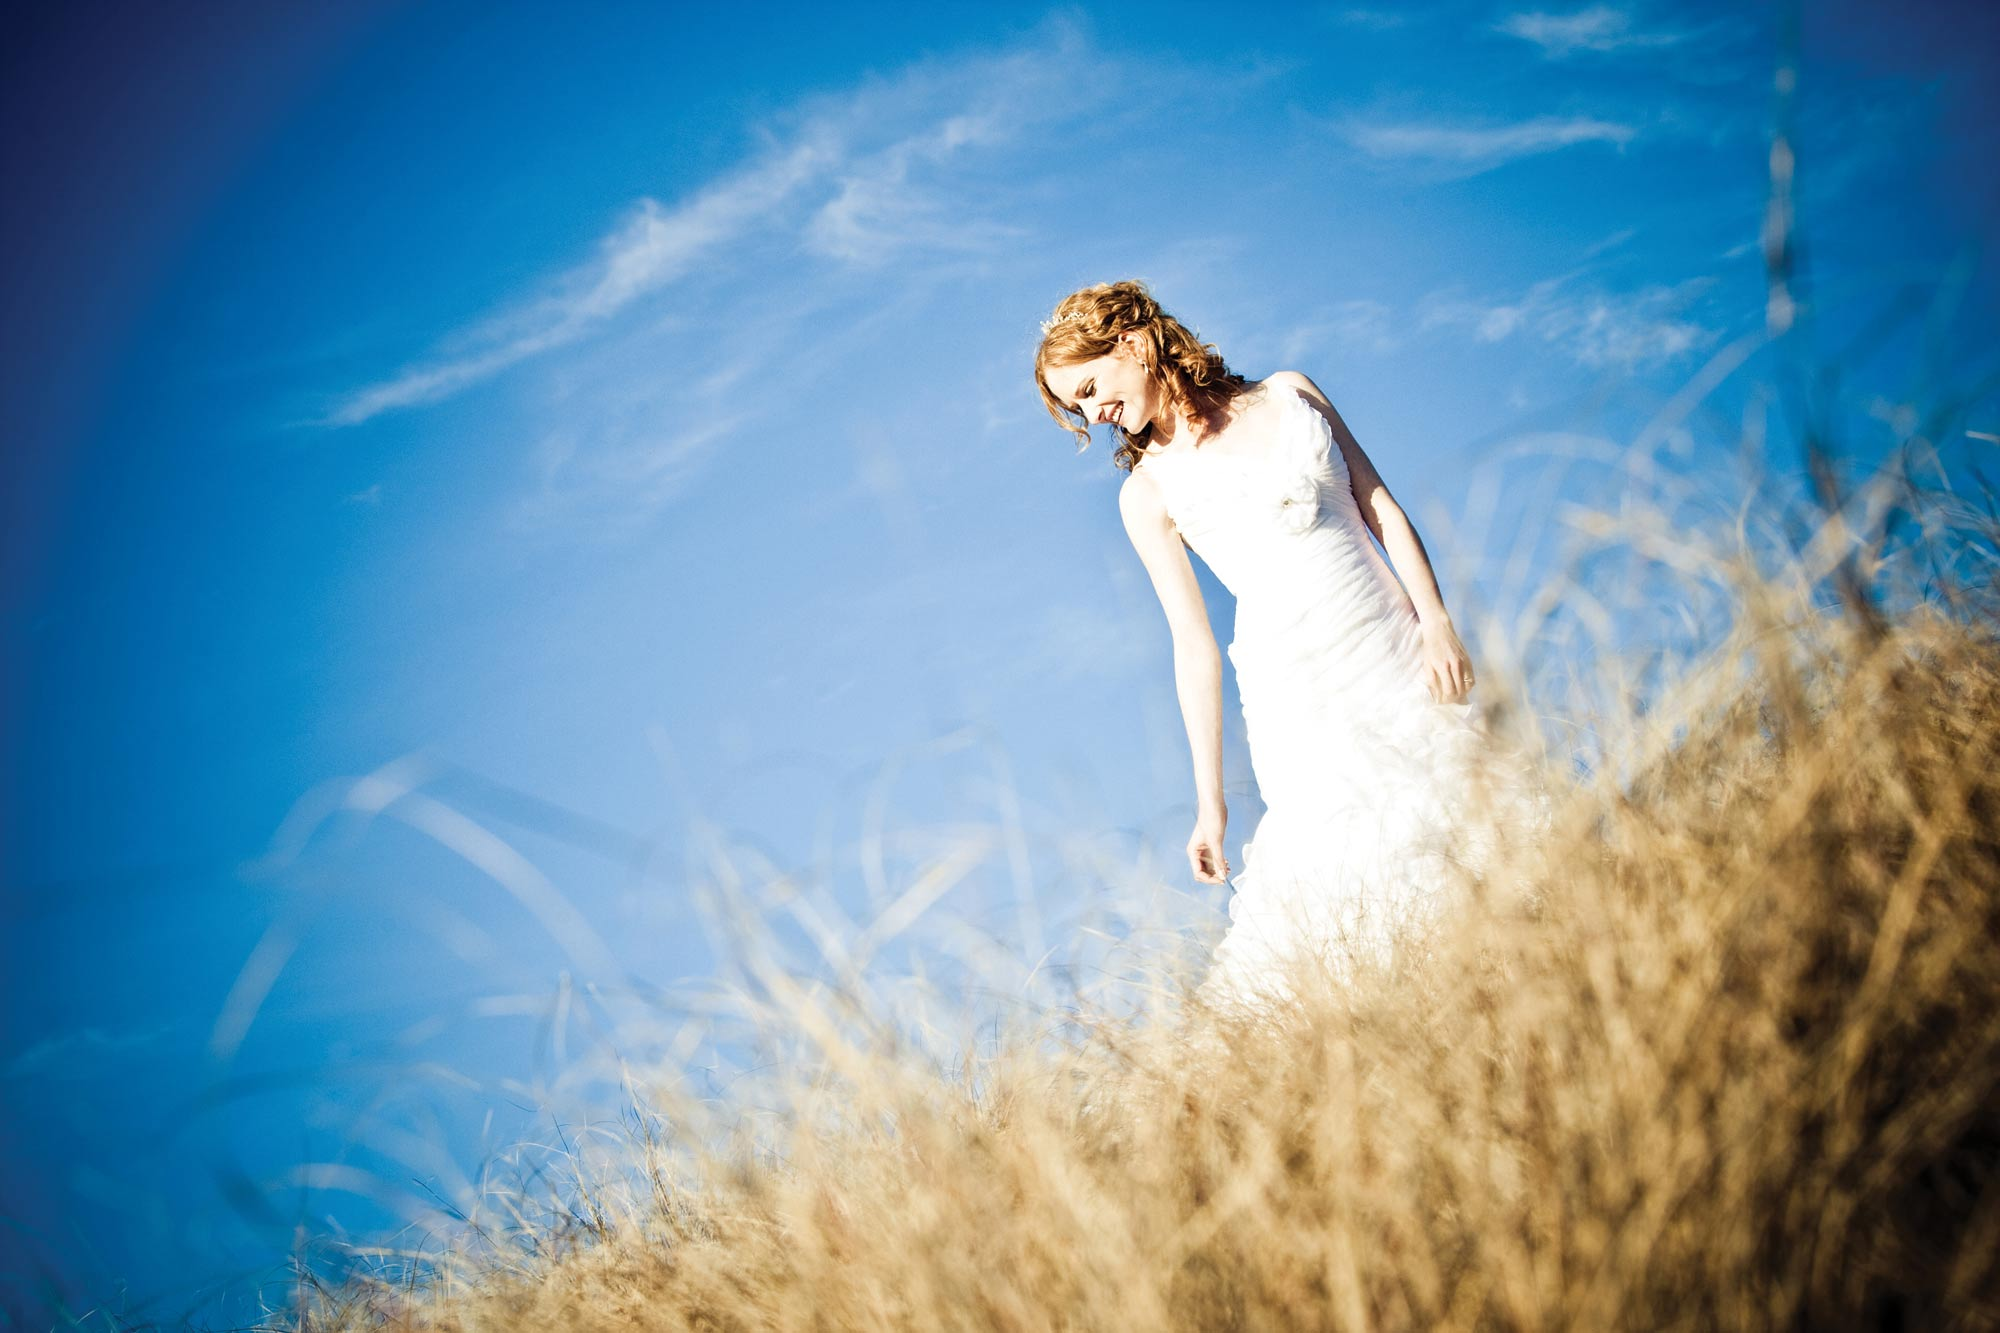 WEDDING / Wither Hills, Marlborough